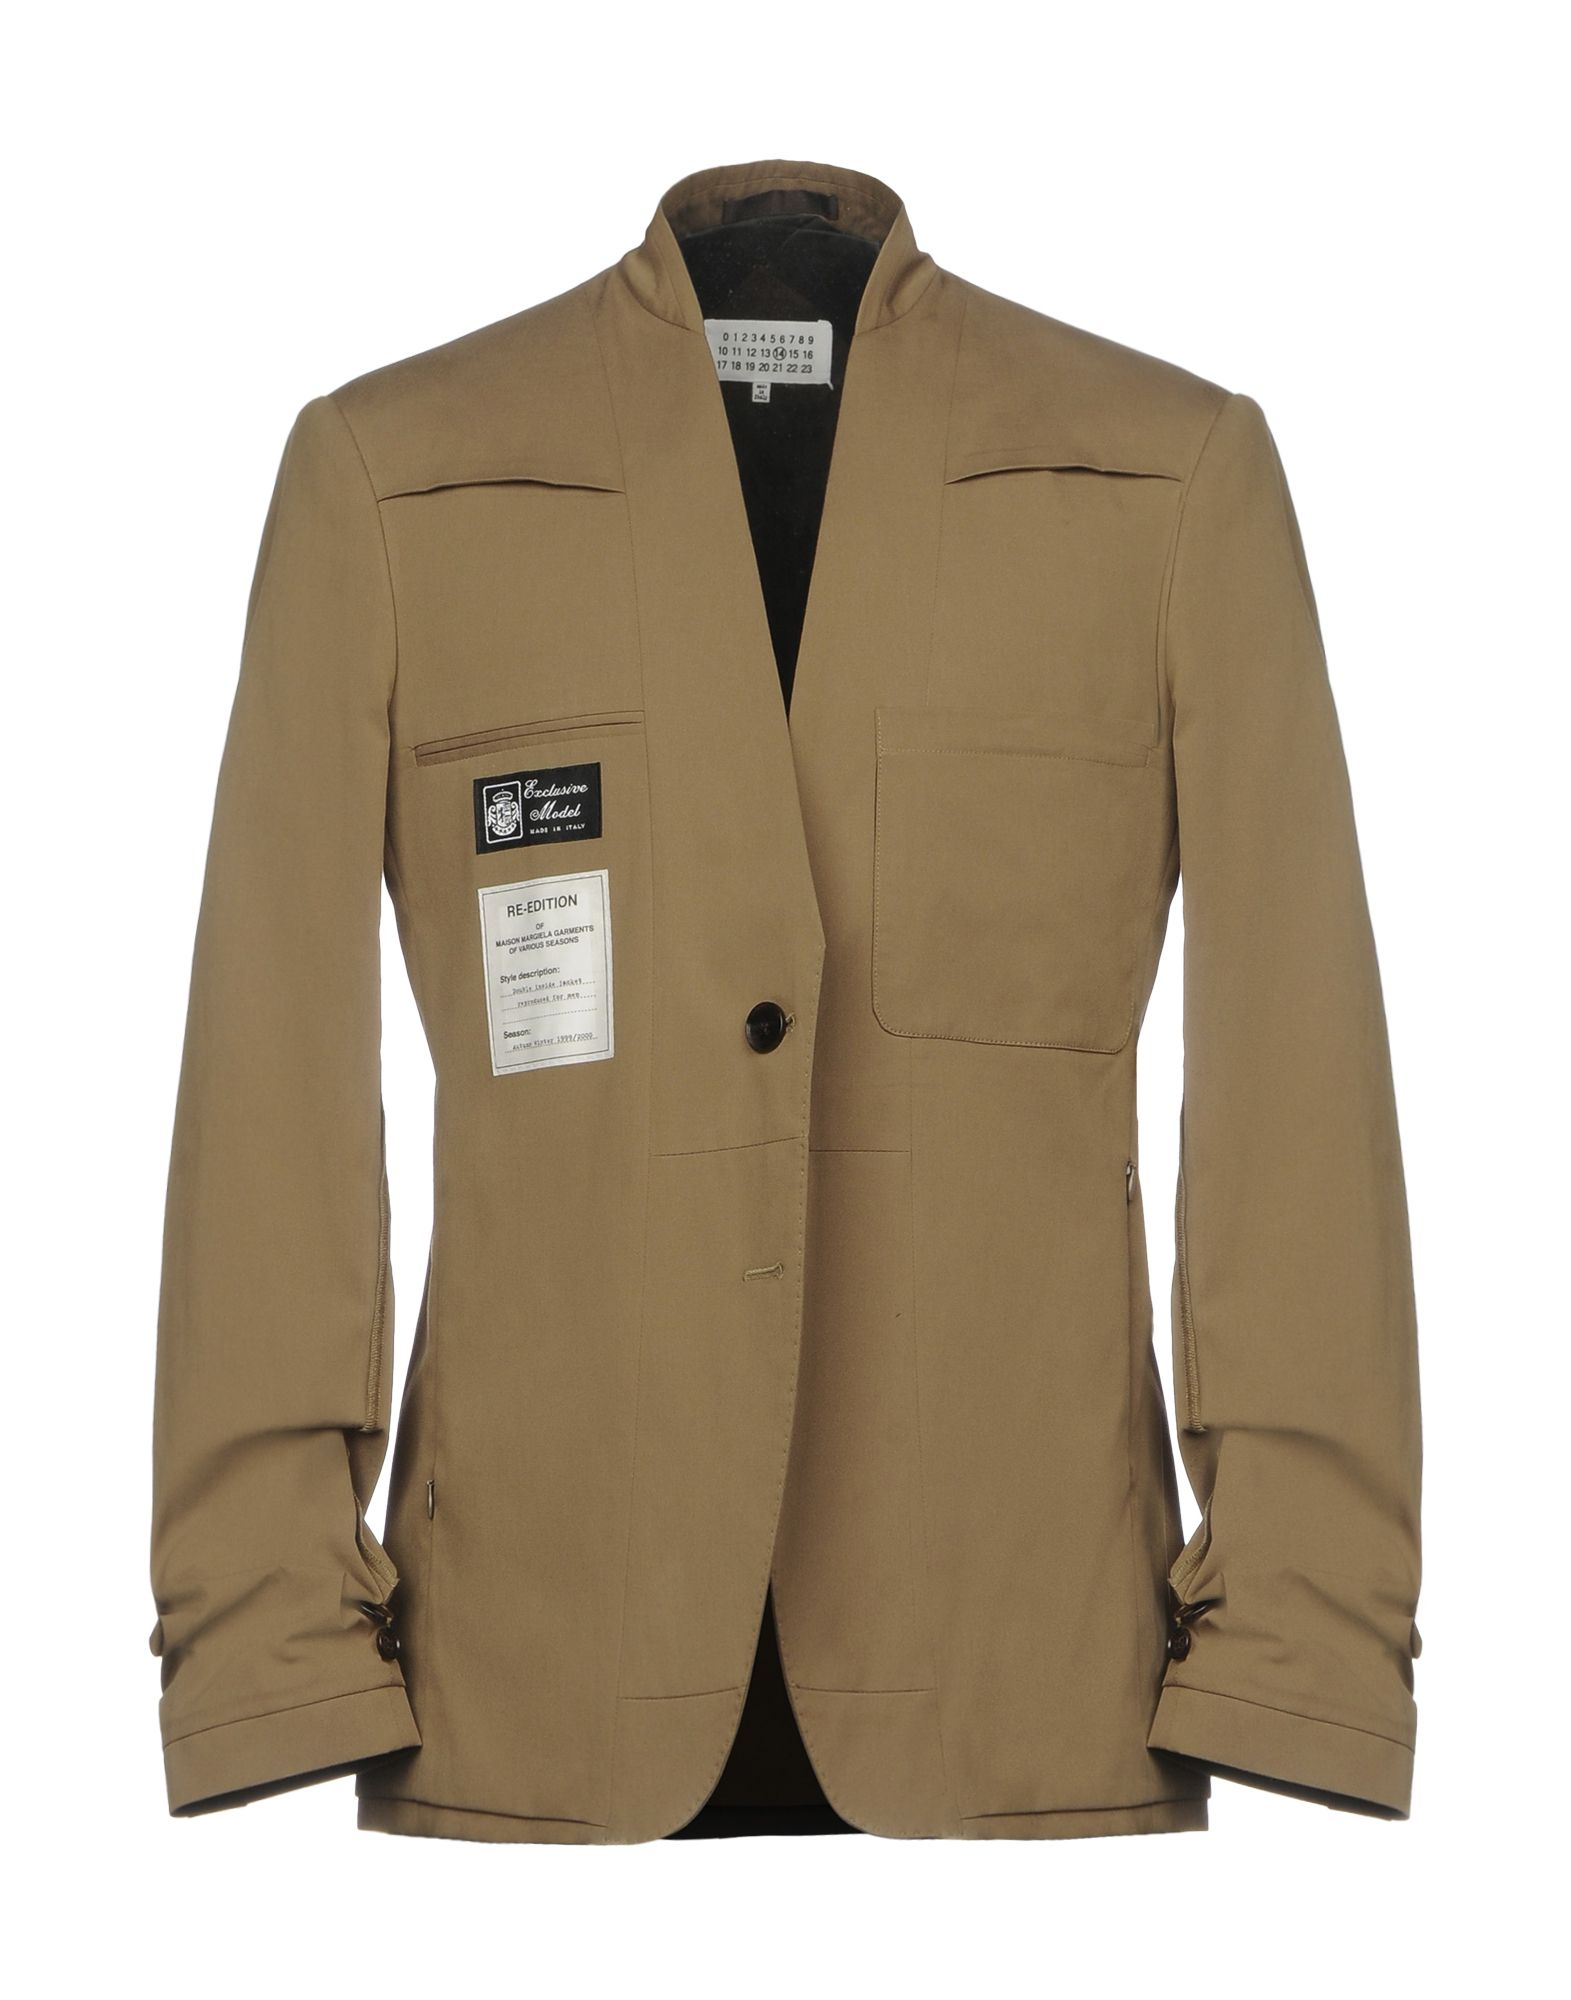 c6be6aa9fd0 Maison Margiela Men - Maison Margiela Suits And Blazers - YOOX United States